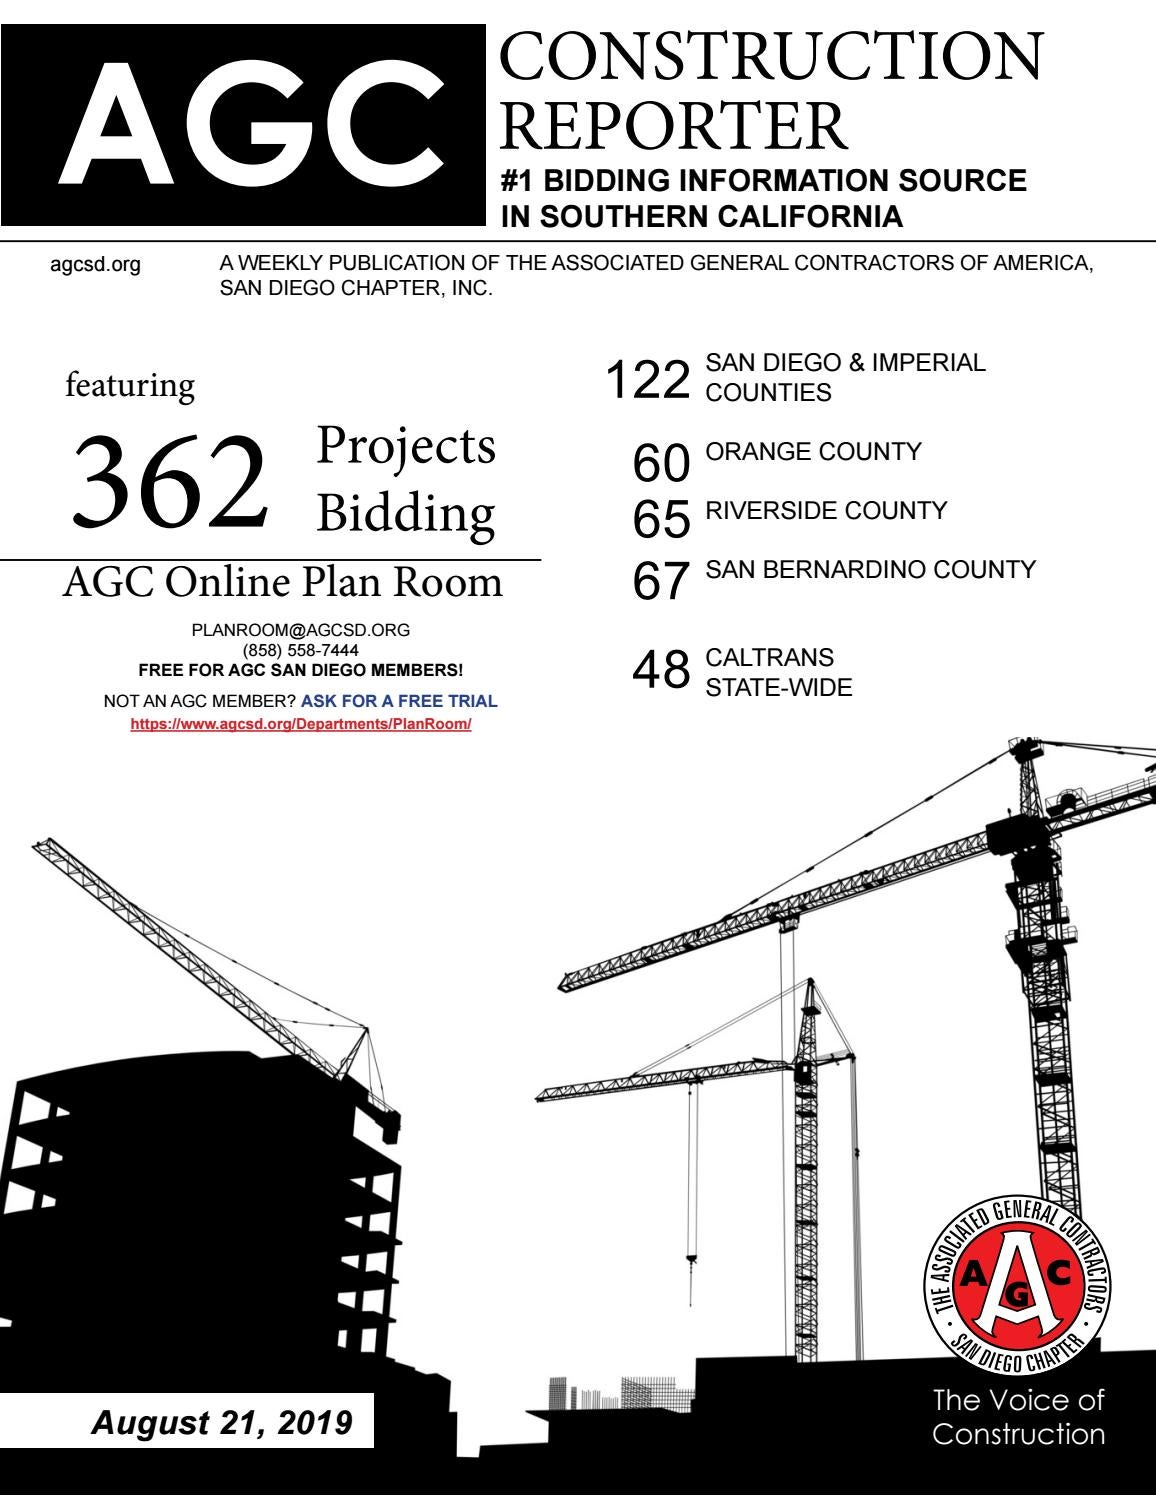 AGC Construction Reporter - August 21, 2019 by AGC San Diego